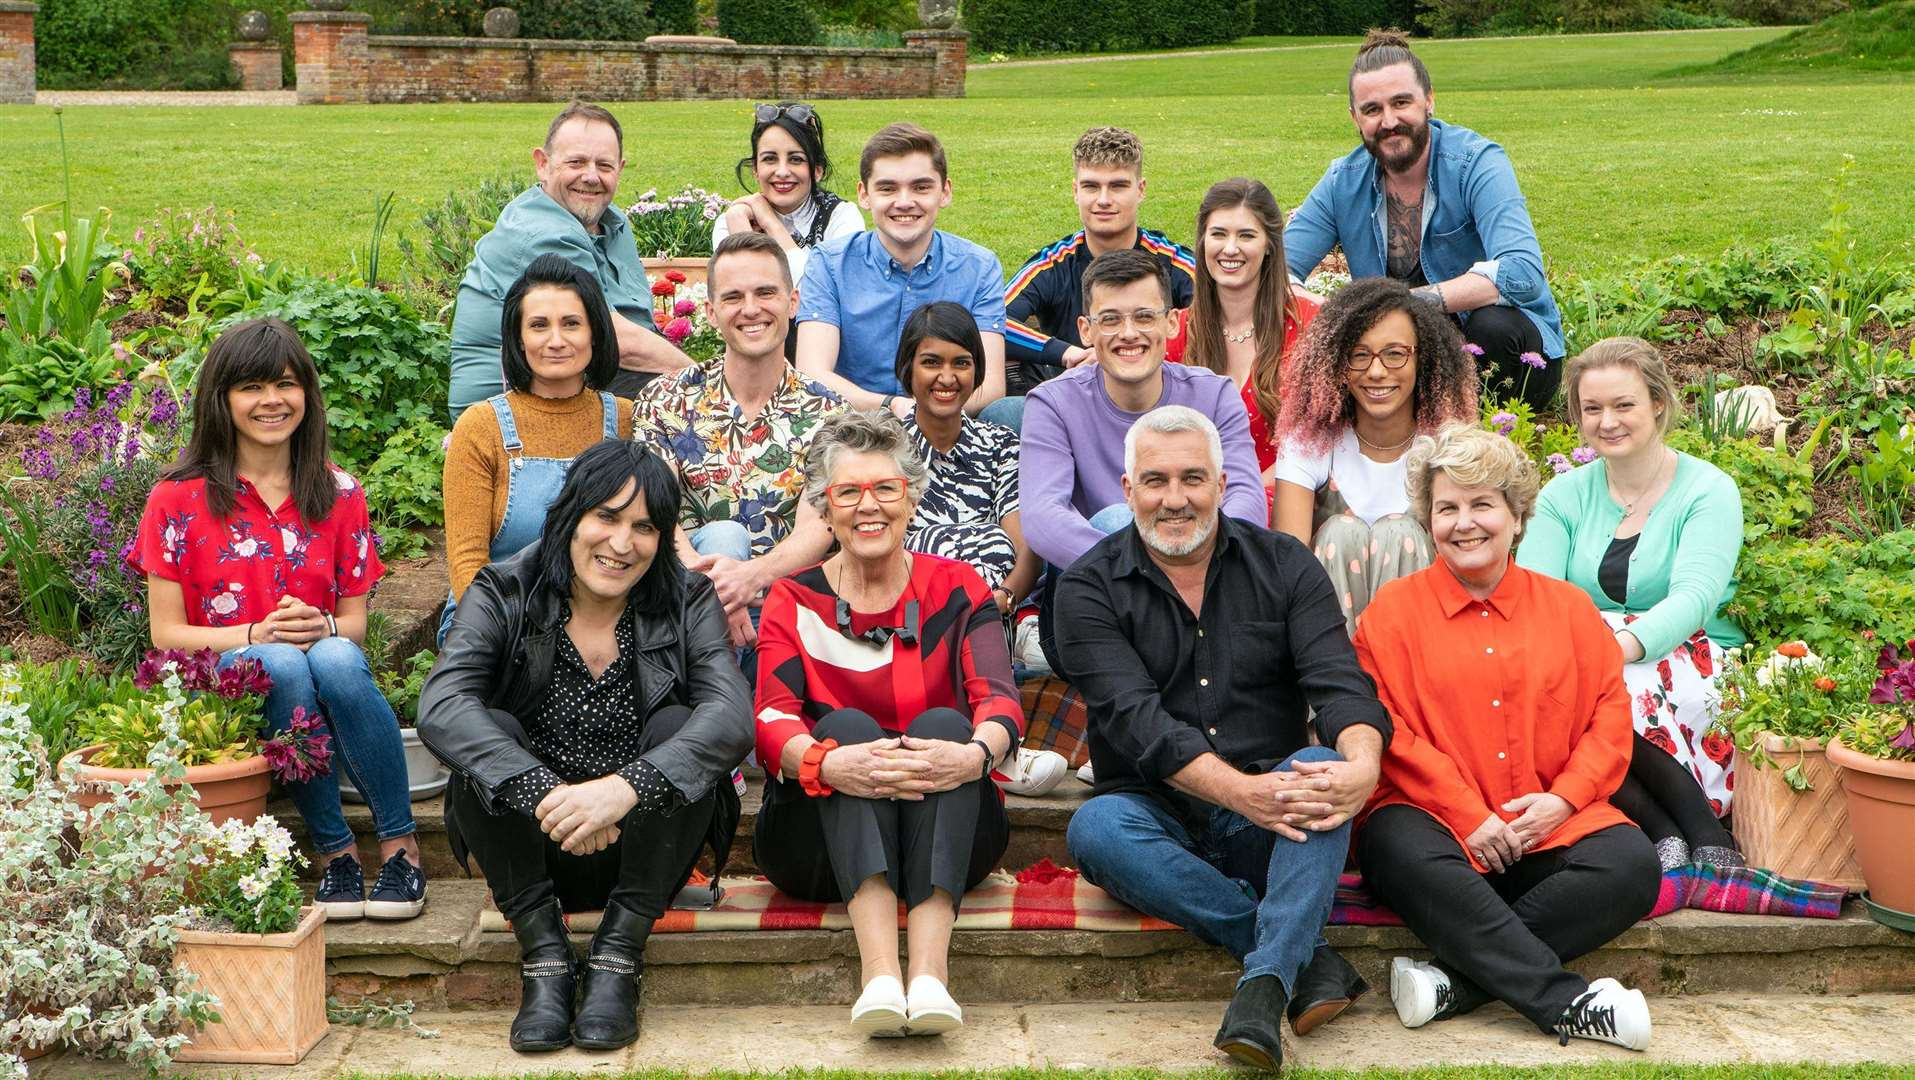 Bake Off is back this week with a new batch of hopefuls Picture: PA Photo/Channel 4/© Love Productions/Mark Bourdillon